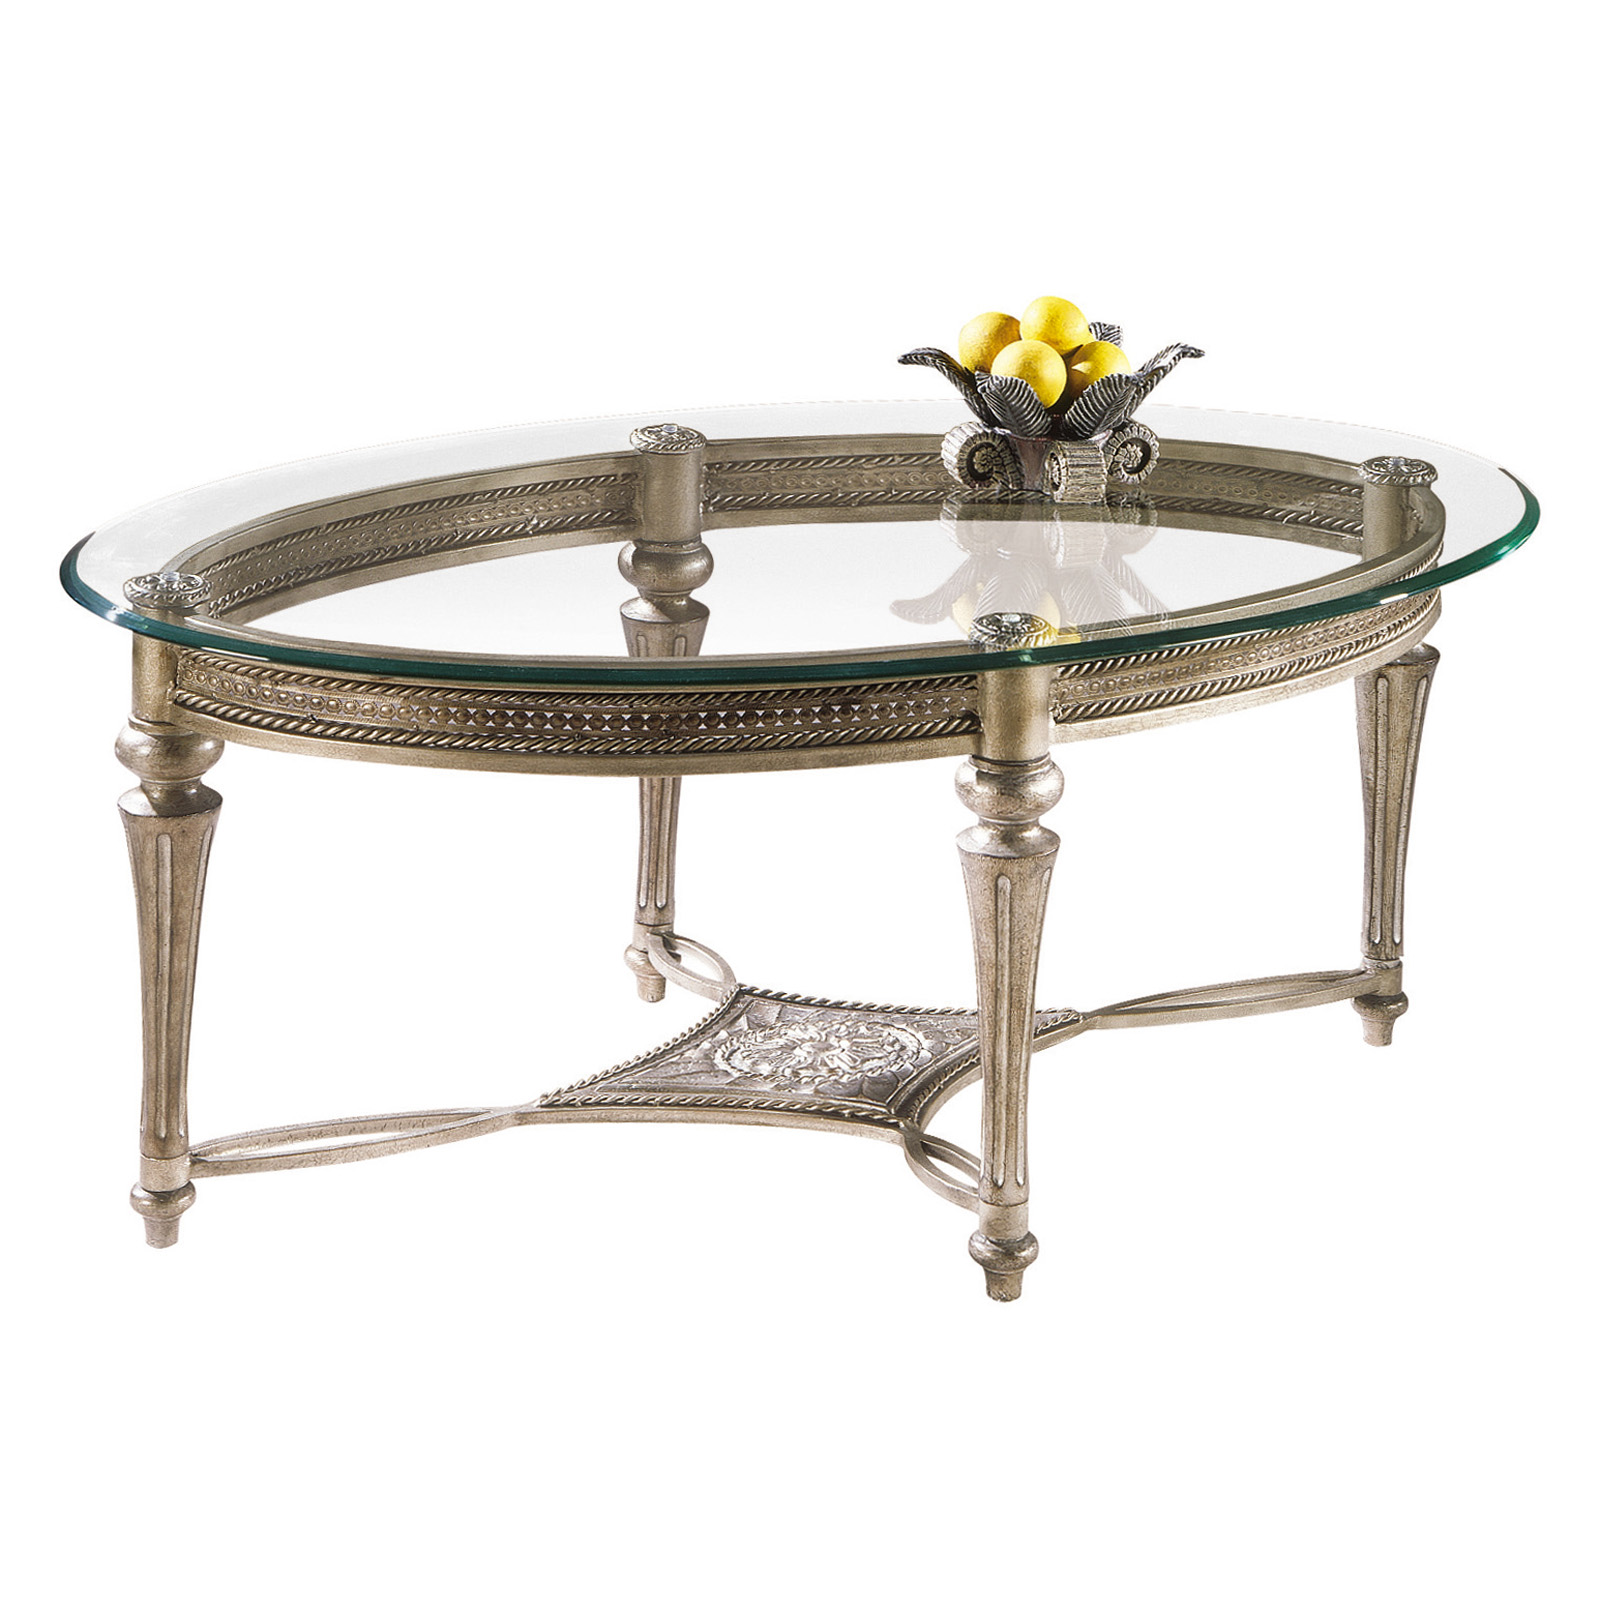 Magnussen galloway oval iron and glass cocktail table for Oval wrought iron coffee table with glass top